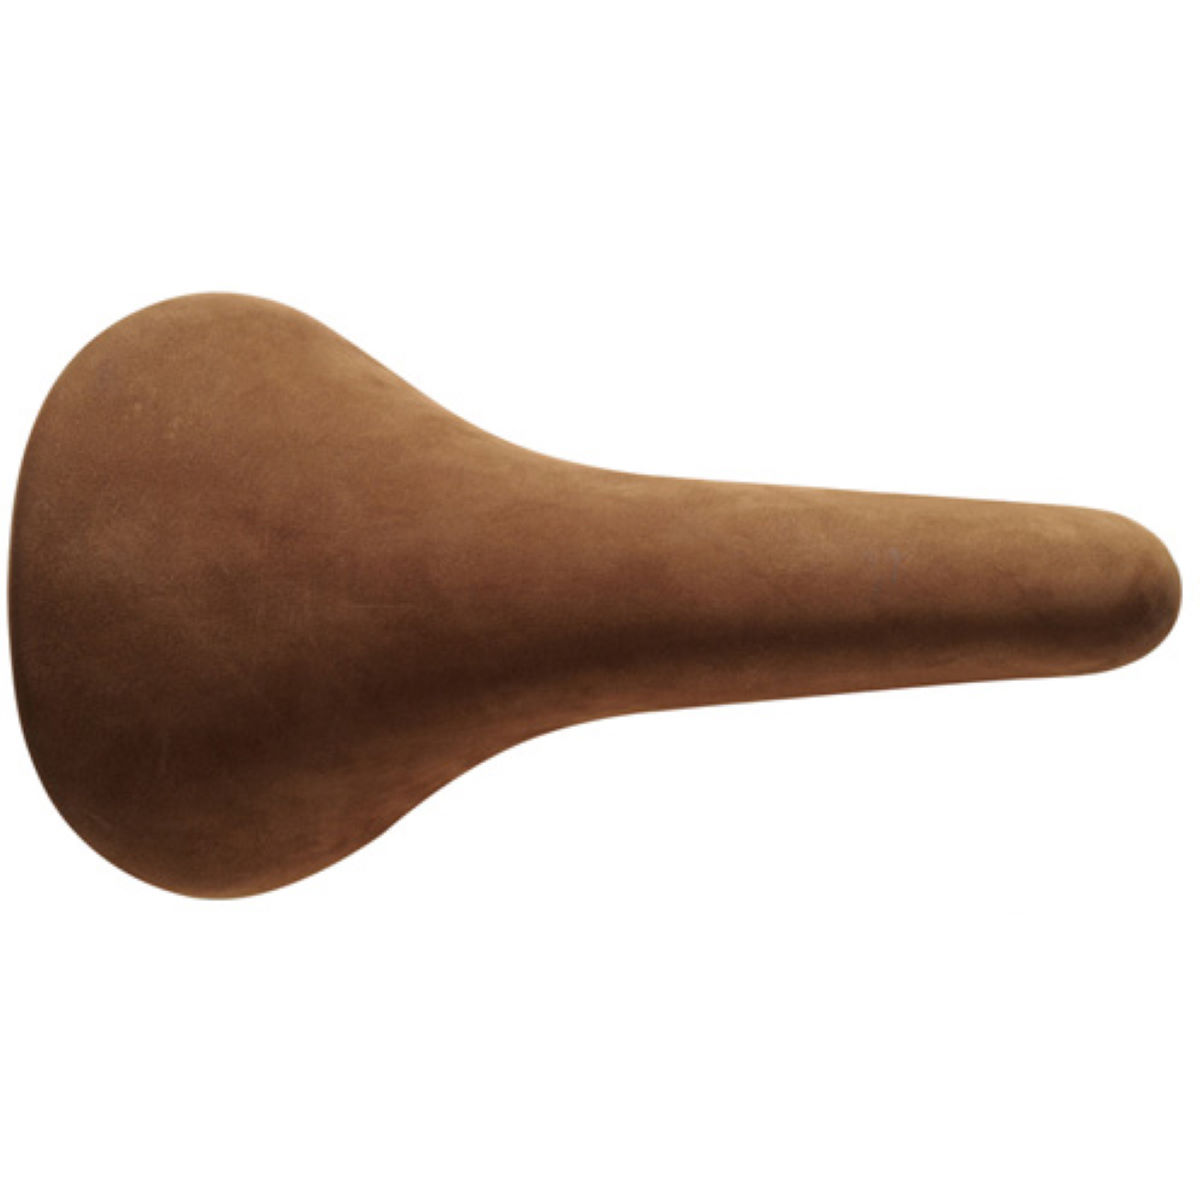 Selle Italia Turbo 1980 en cuir - W 140mm x L 270mm Tan Selles performance